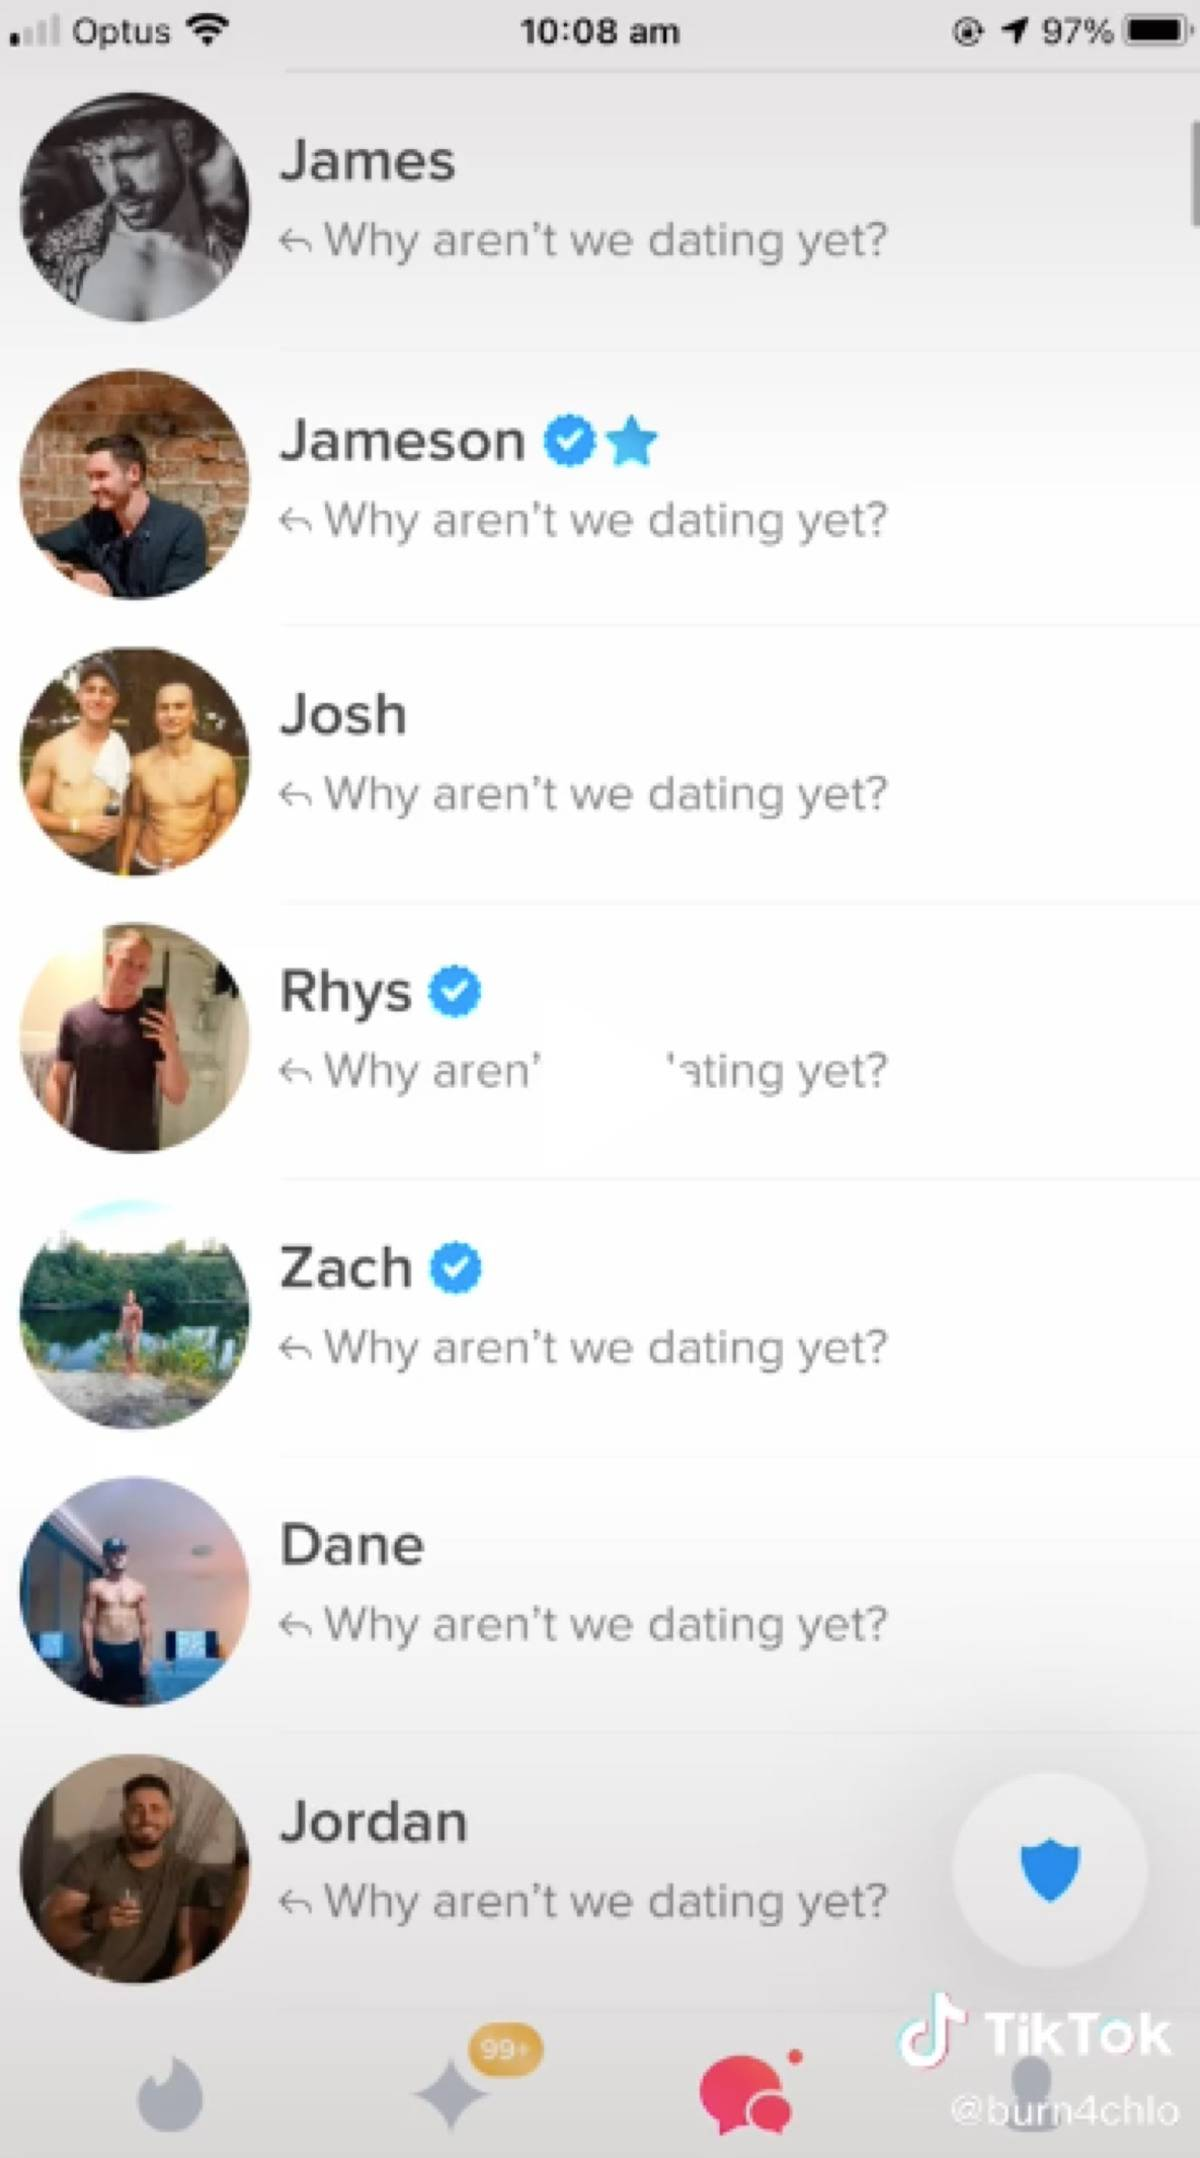 Screenshot of Chloe's Tinder matches, all showing her sent message